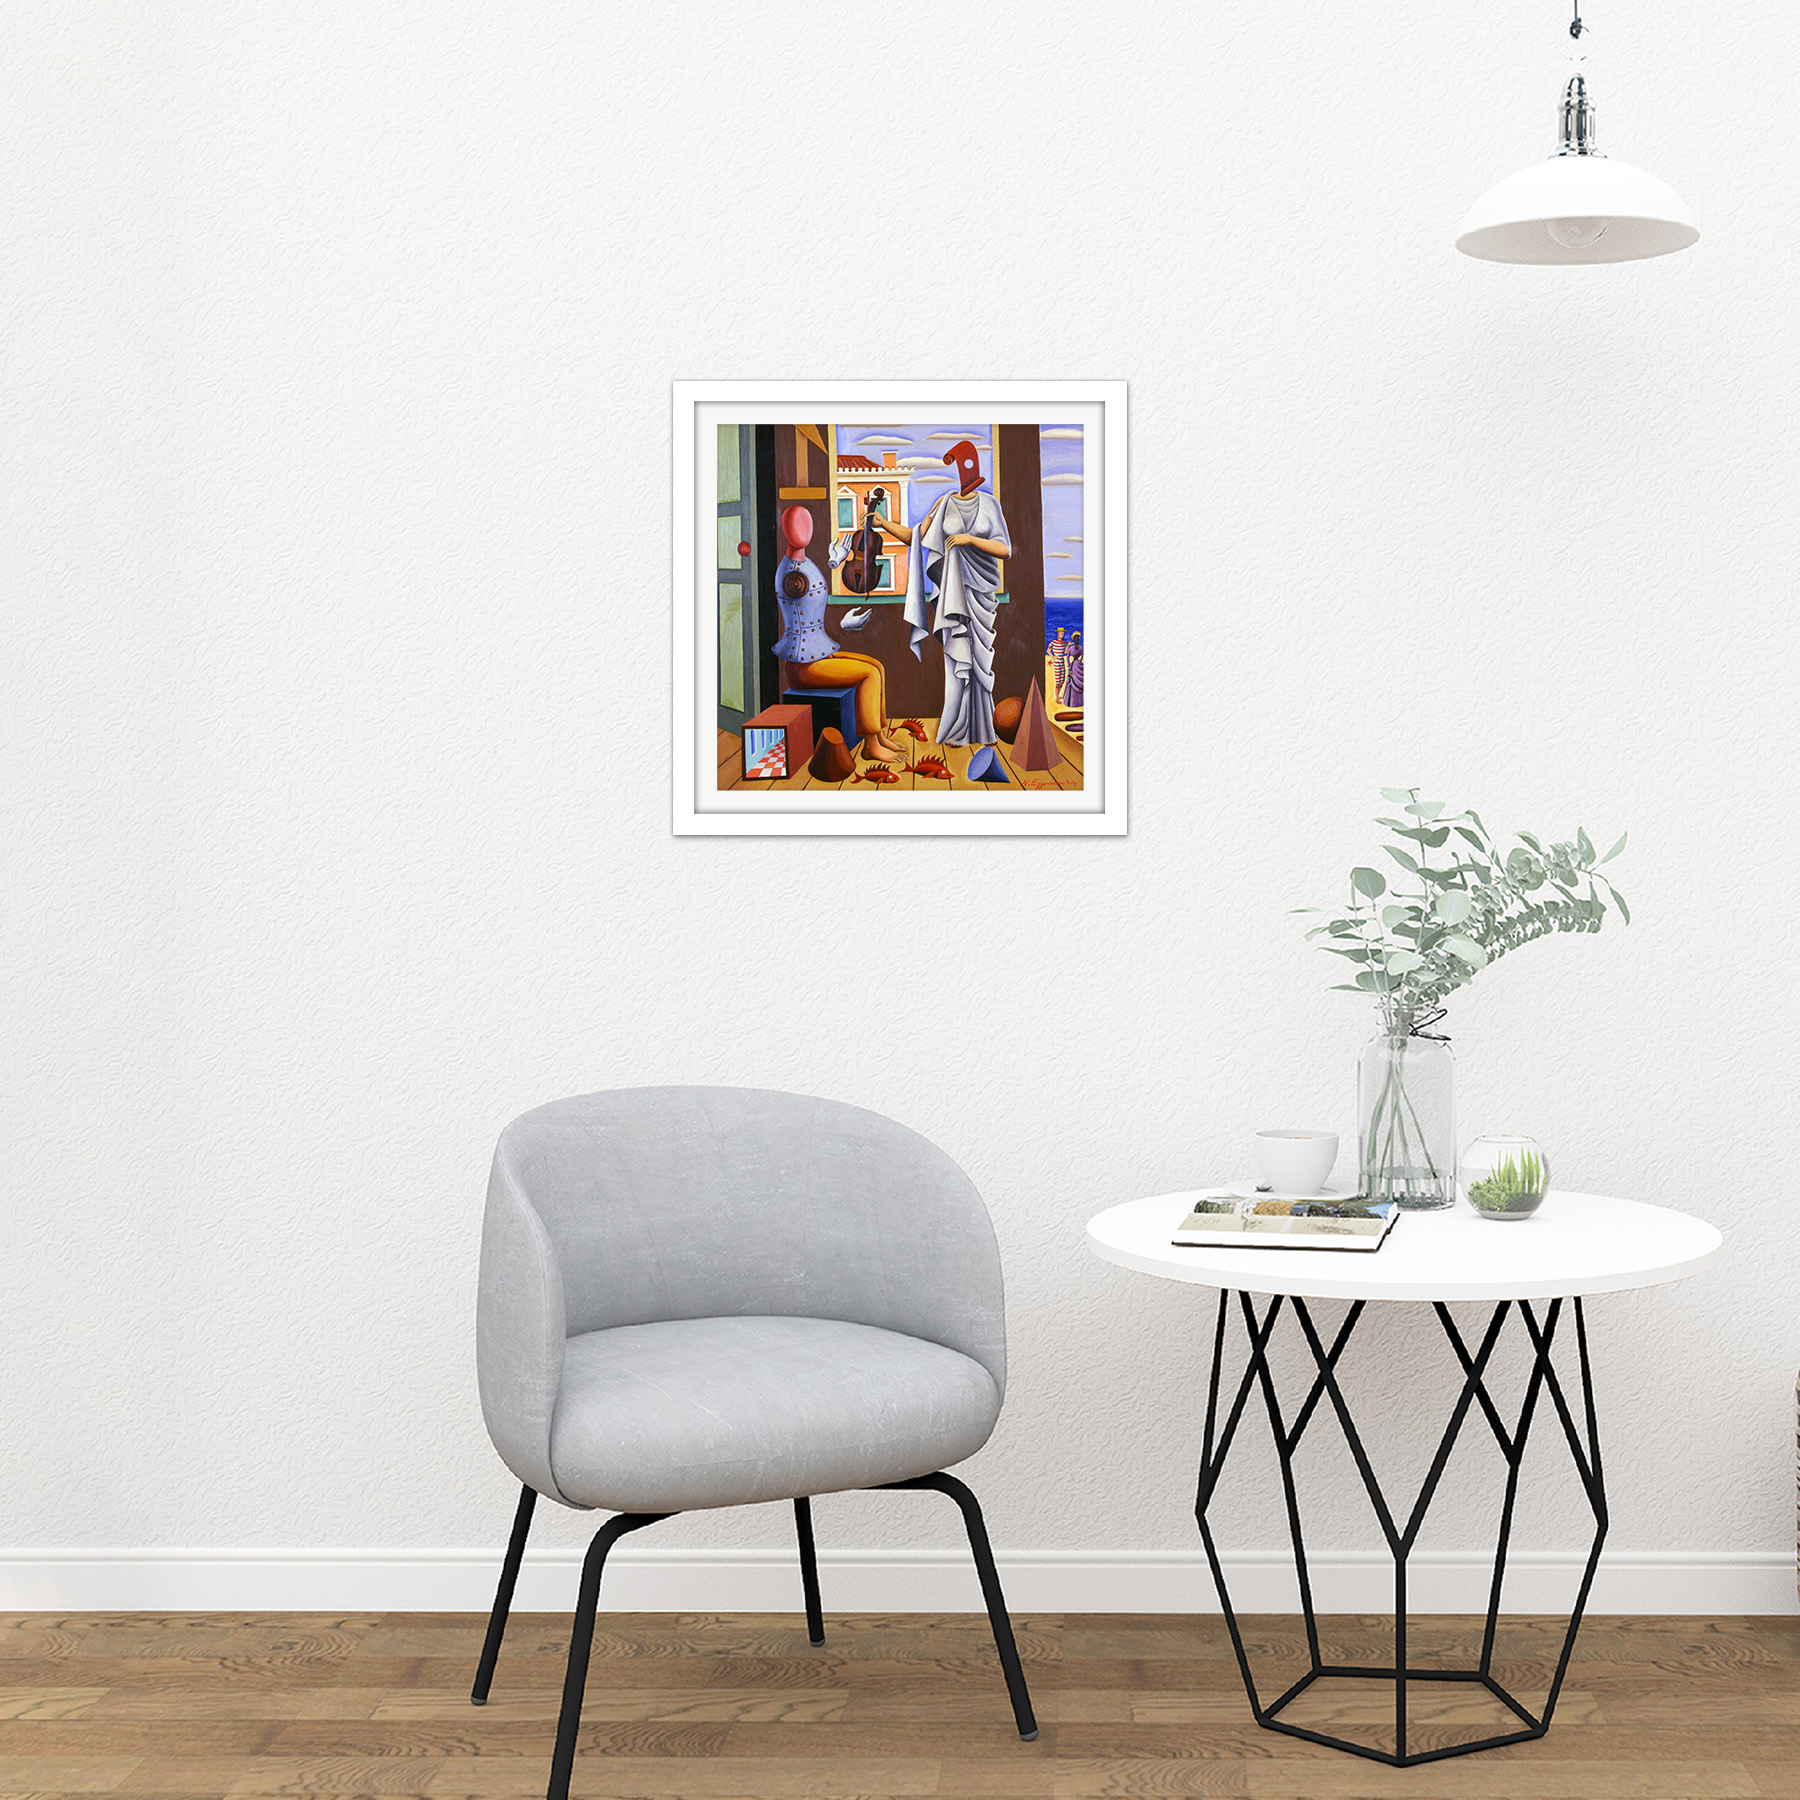 Nikos-Engonopoulos-Poet-And-Muse-Square-Framed-Wall-Art-16X16-In thumbnail 18